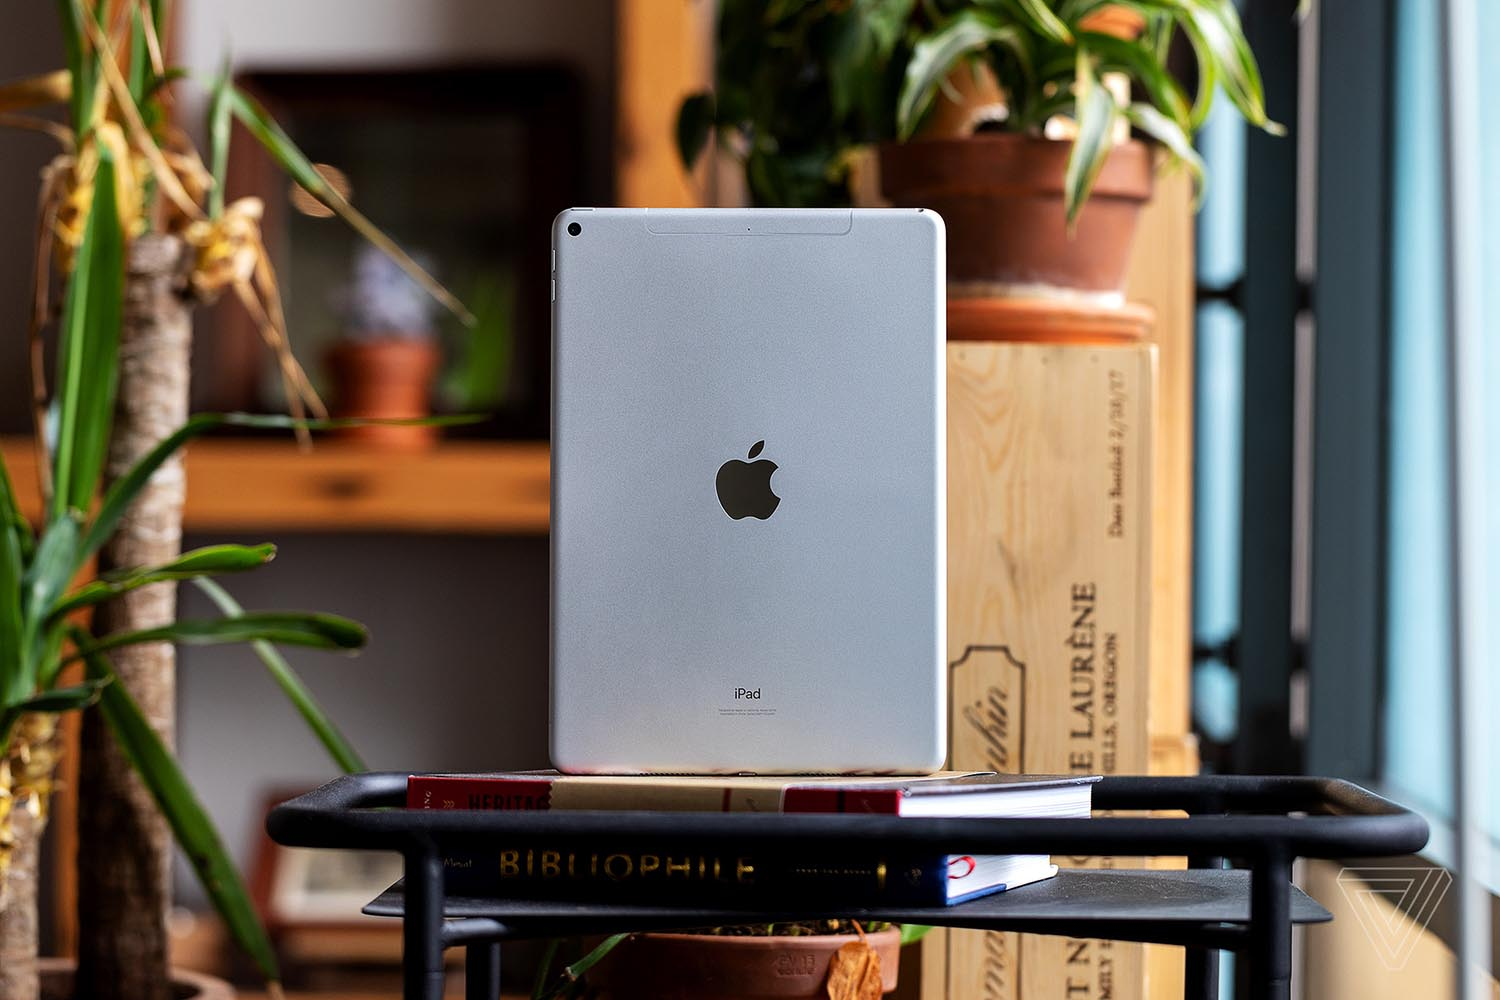 Ming Chi Kuo: Apple is preparing new iPad tablets and iPad mini with larger displays